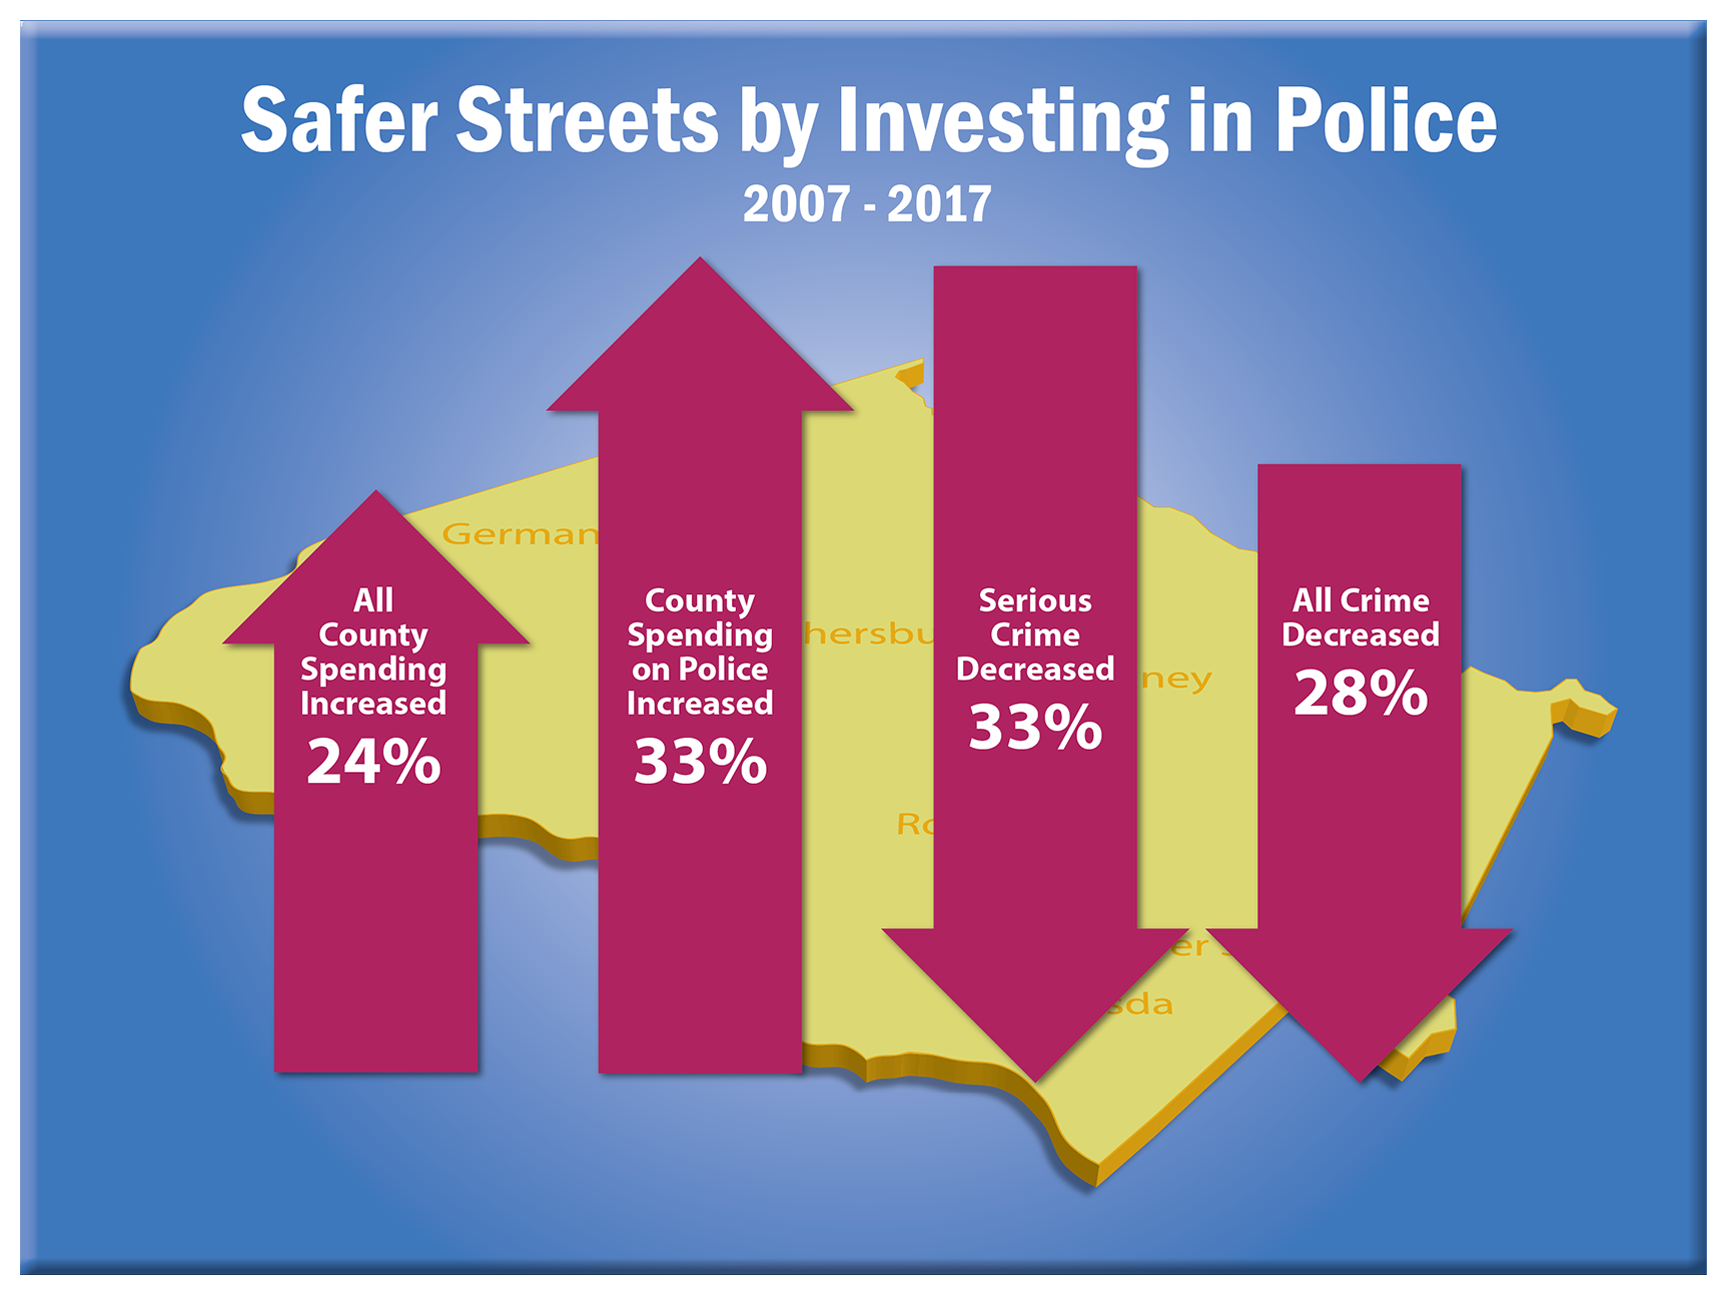 Safer Streets by Investing in Police